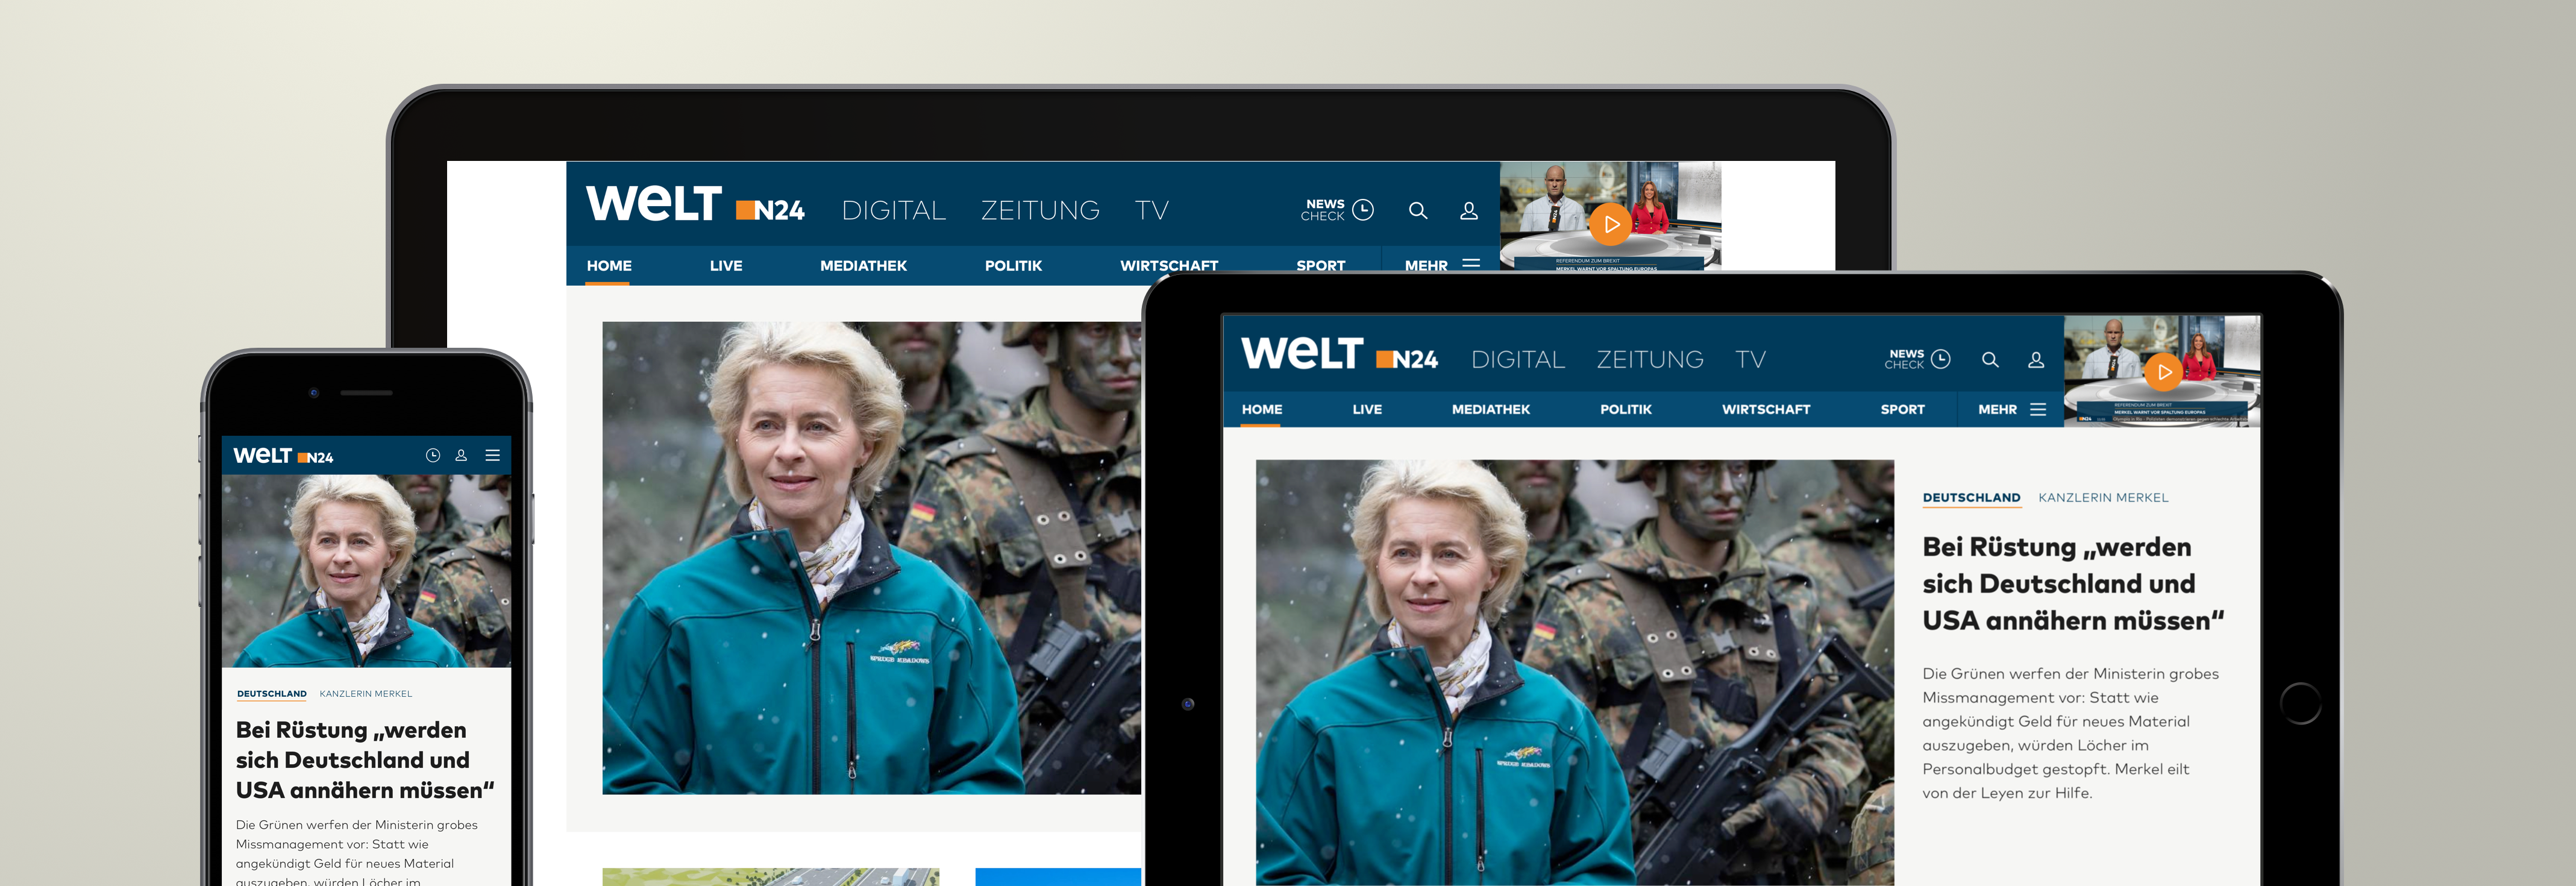 Reinvention of the WELT News Portal